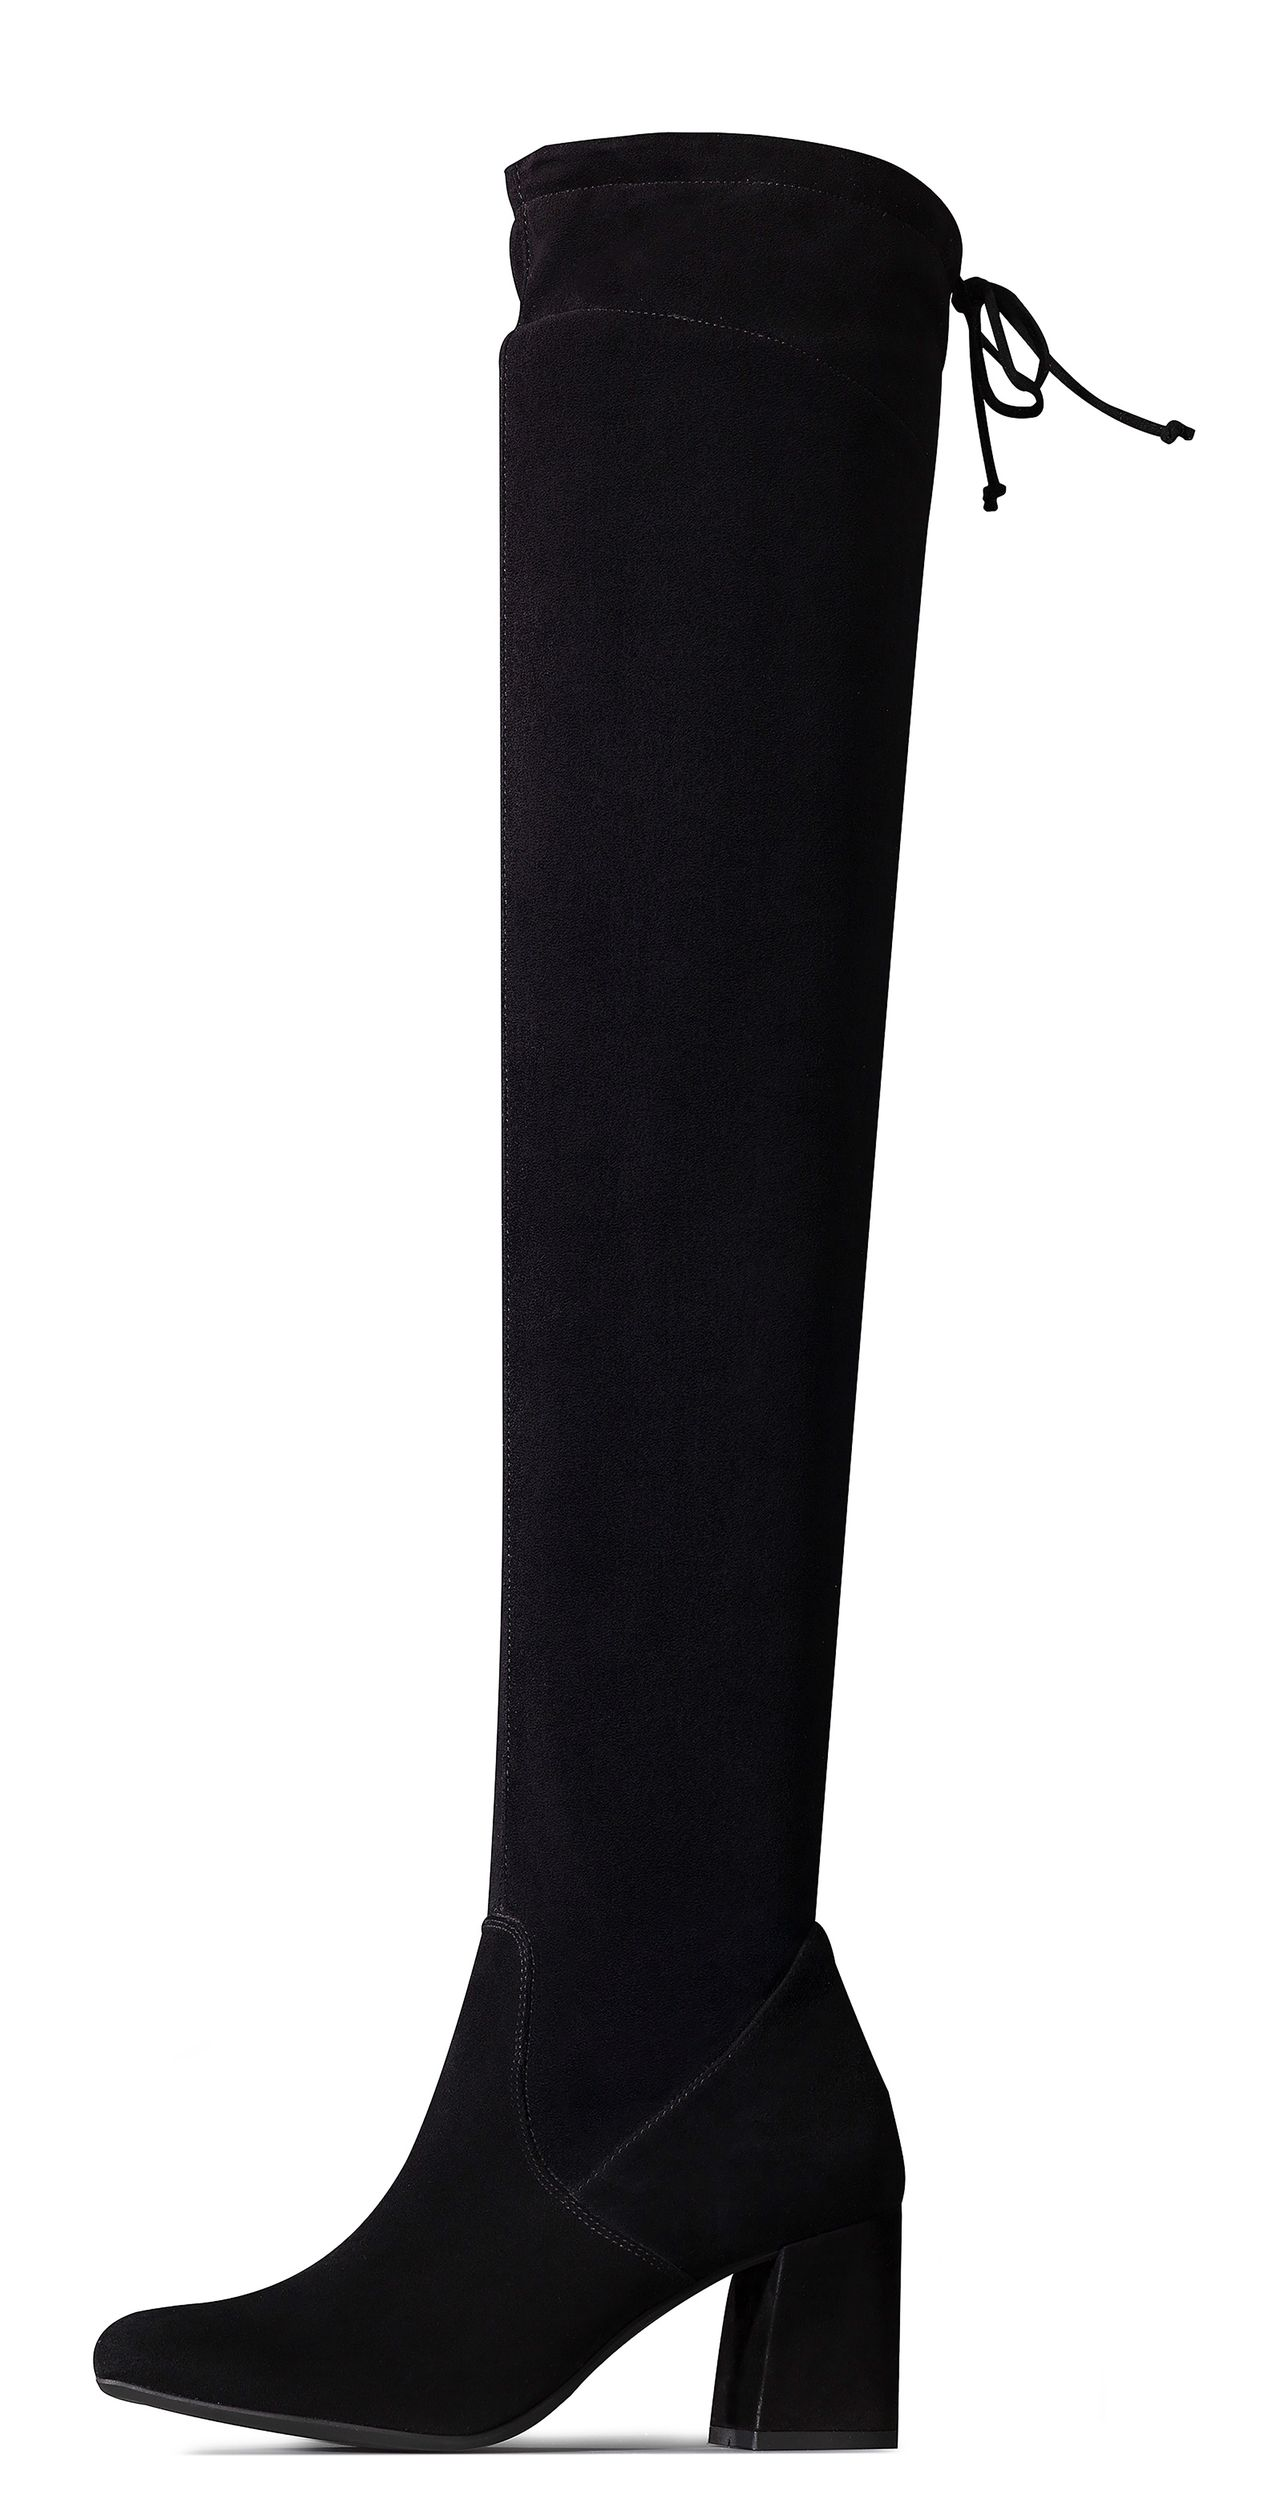 brillant over knee boots in black paul green. Black Bedroom Furniture Sets. Home Design Ideas